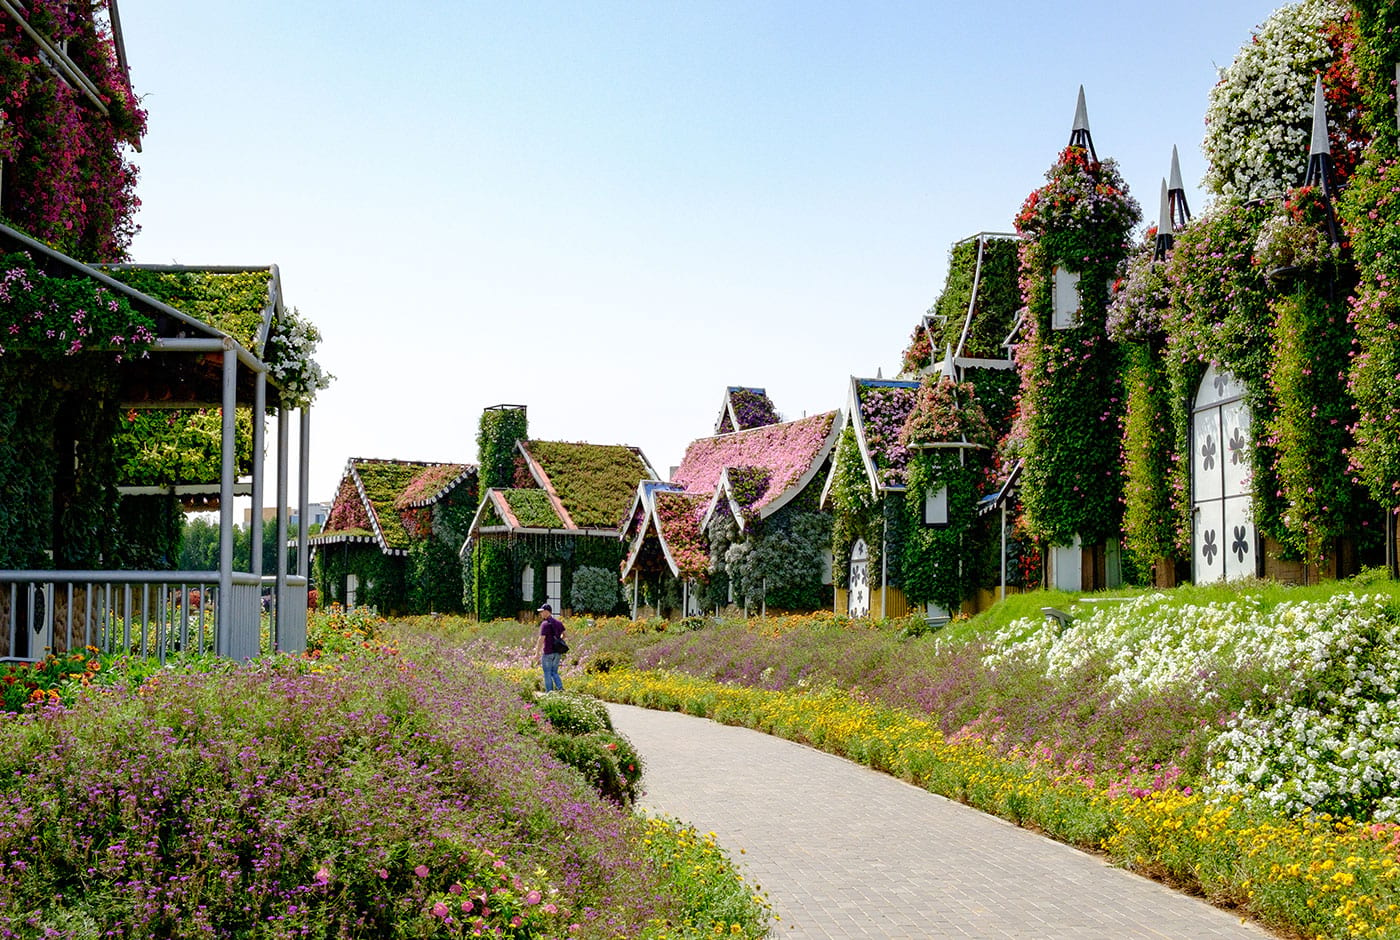 Dubai Miracle Garden Compare Ticket Prices From Different Websites To Find The Best Deal